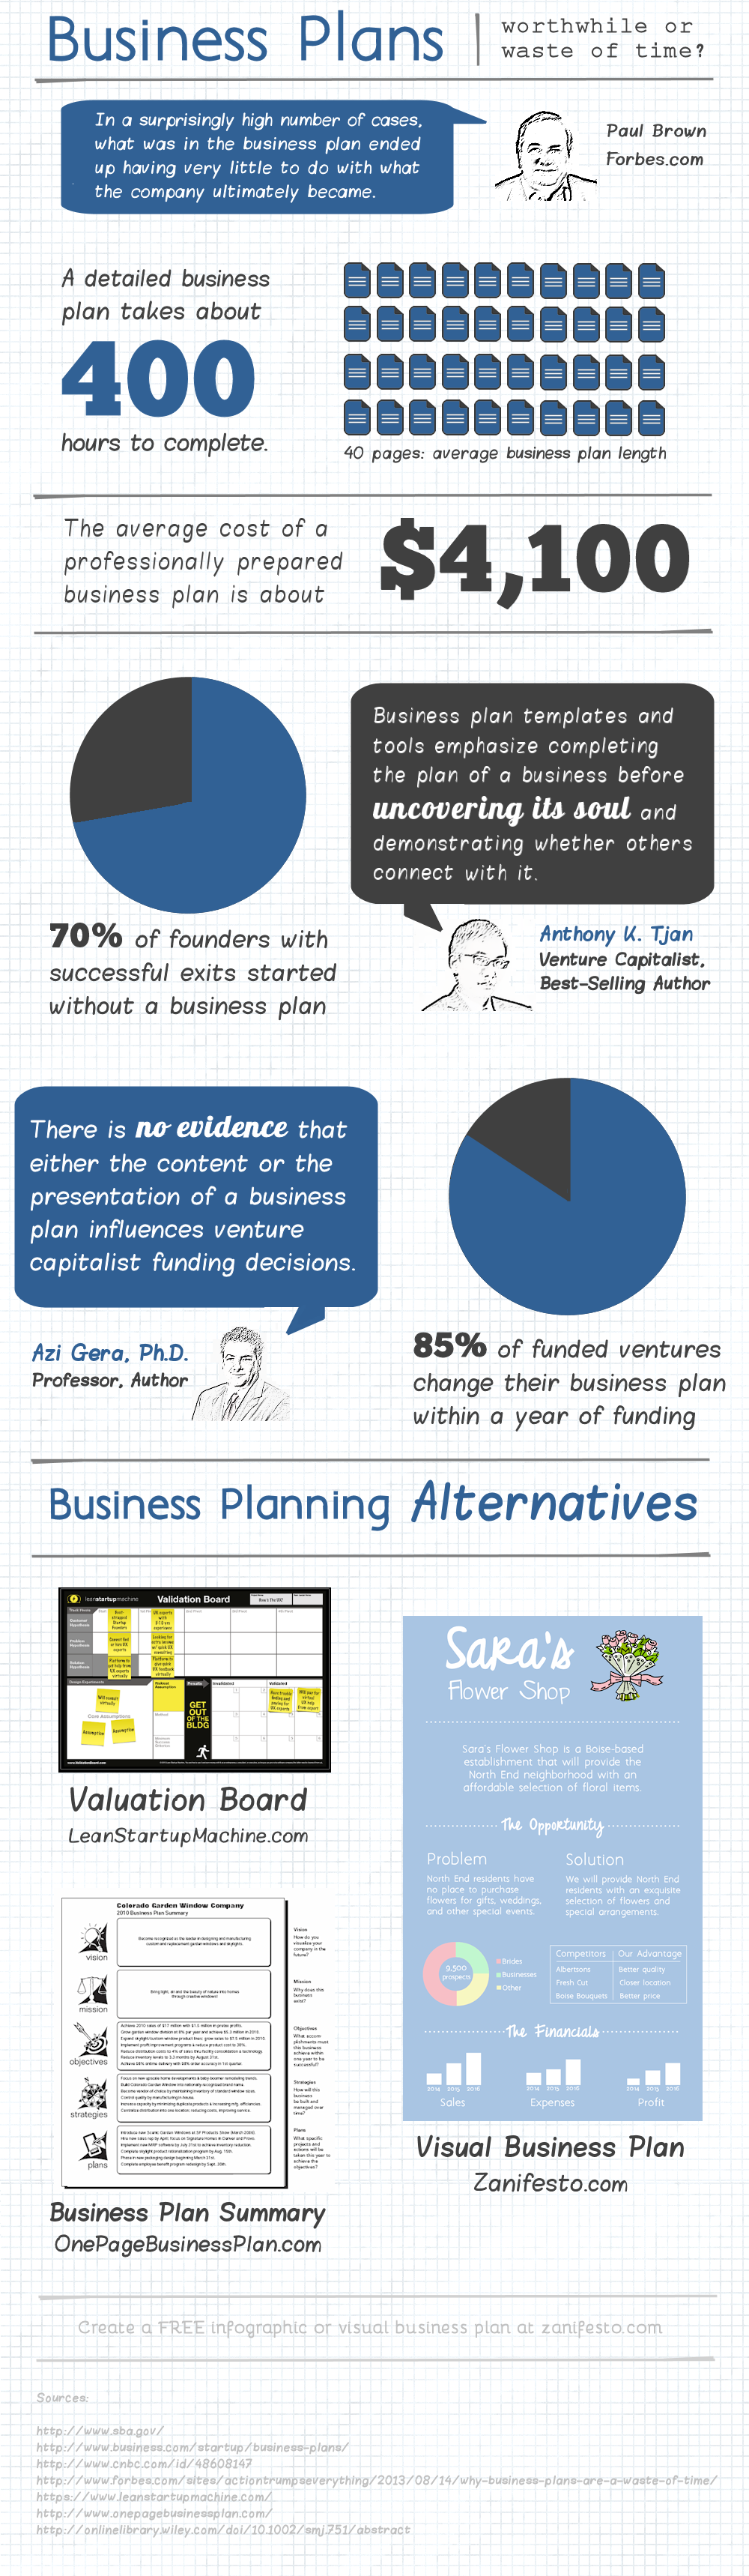 Start Up Business Plan Infographic Do You Think Business Plans